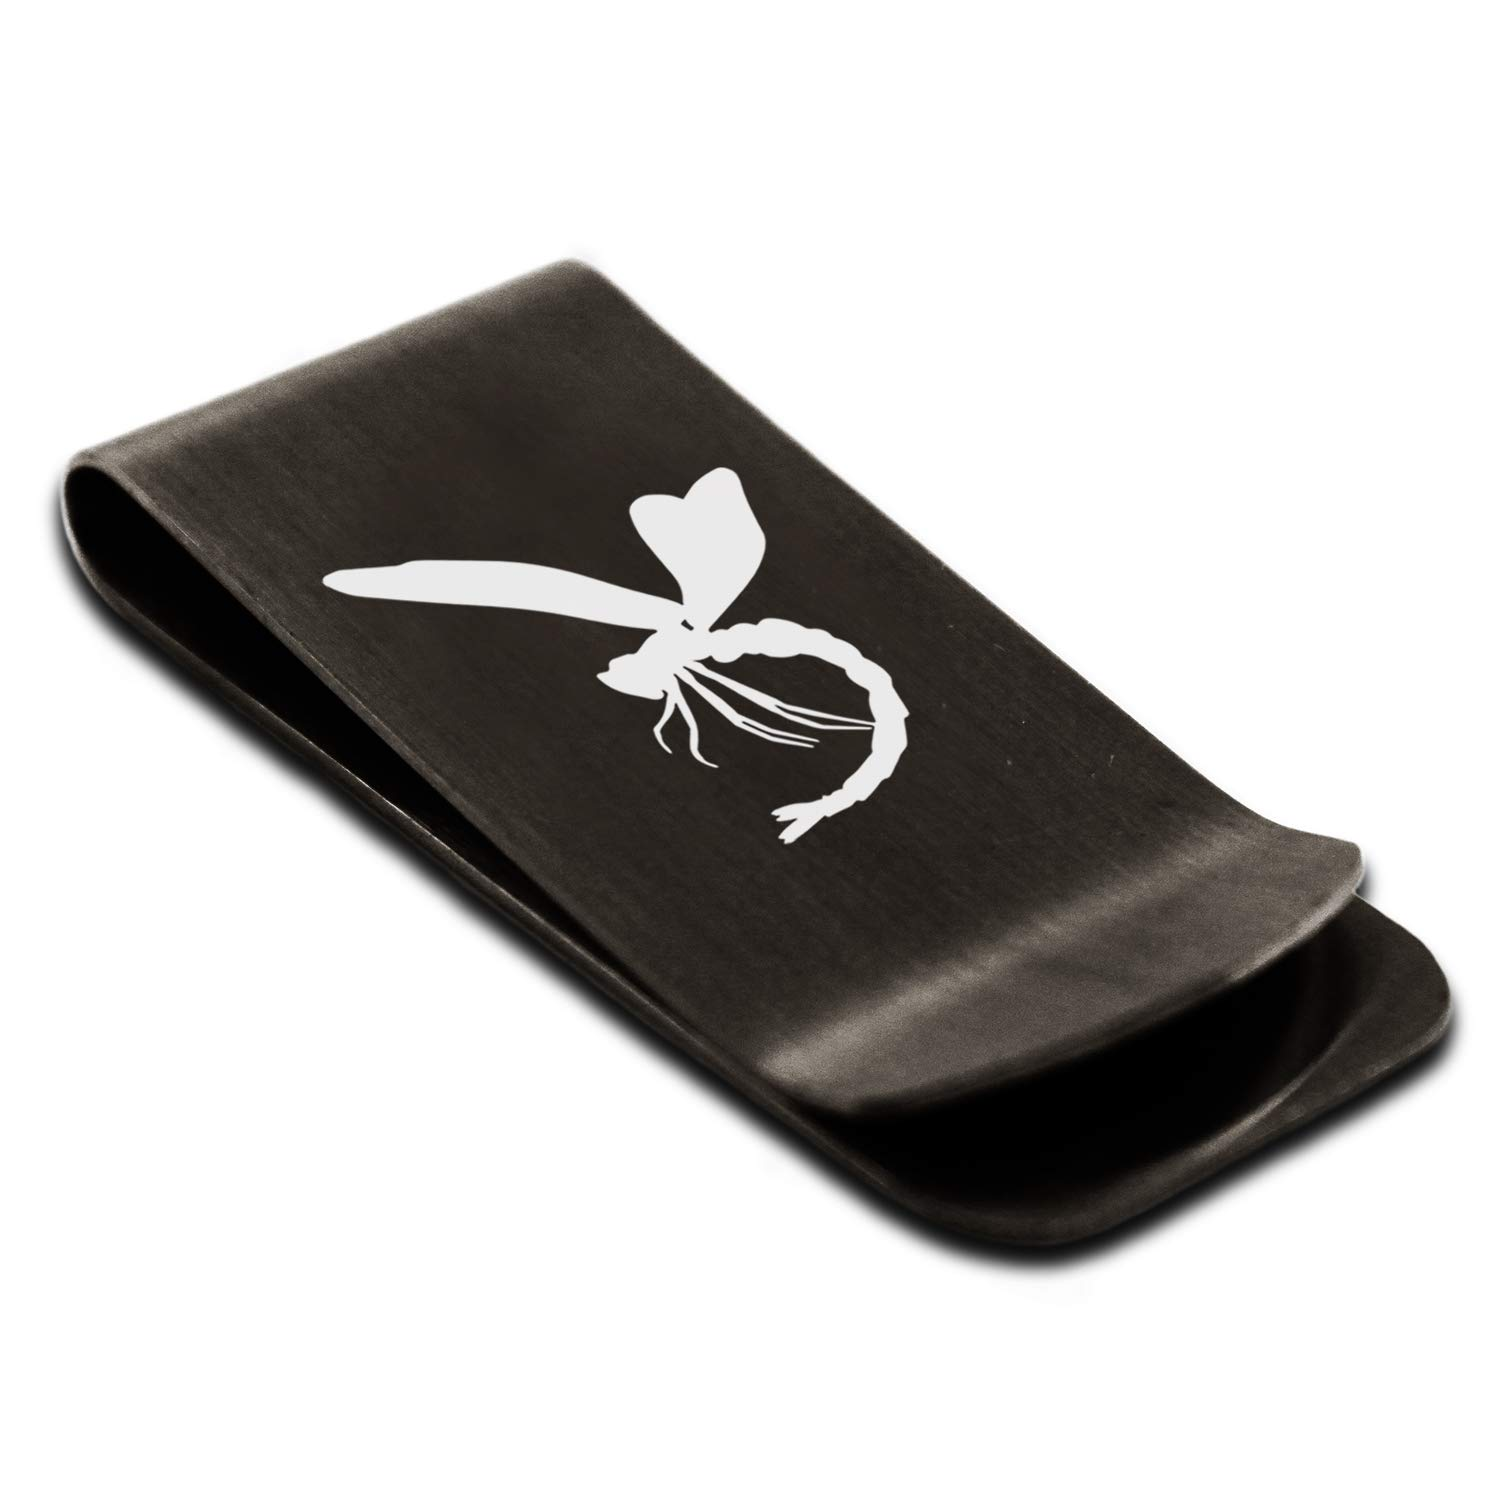 Stainless Steel Dragonfly Money Clip Credit Card Holder